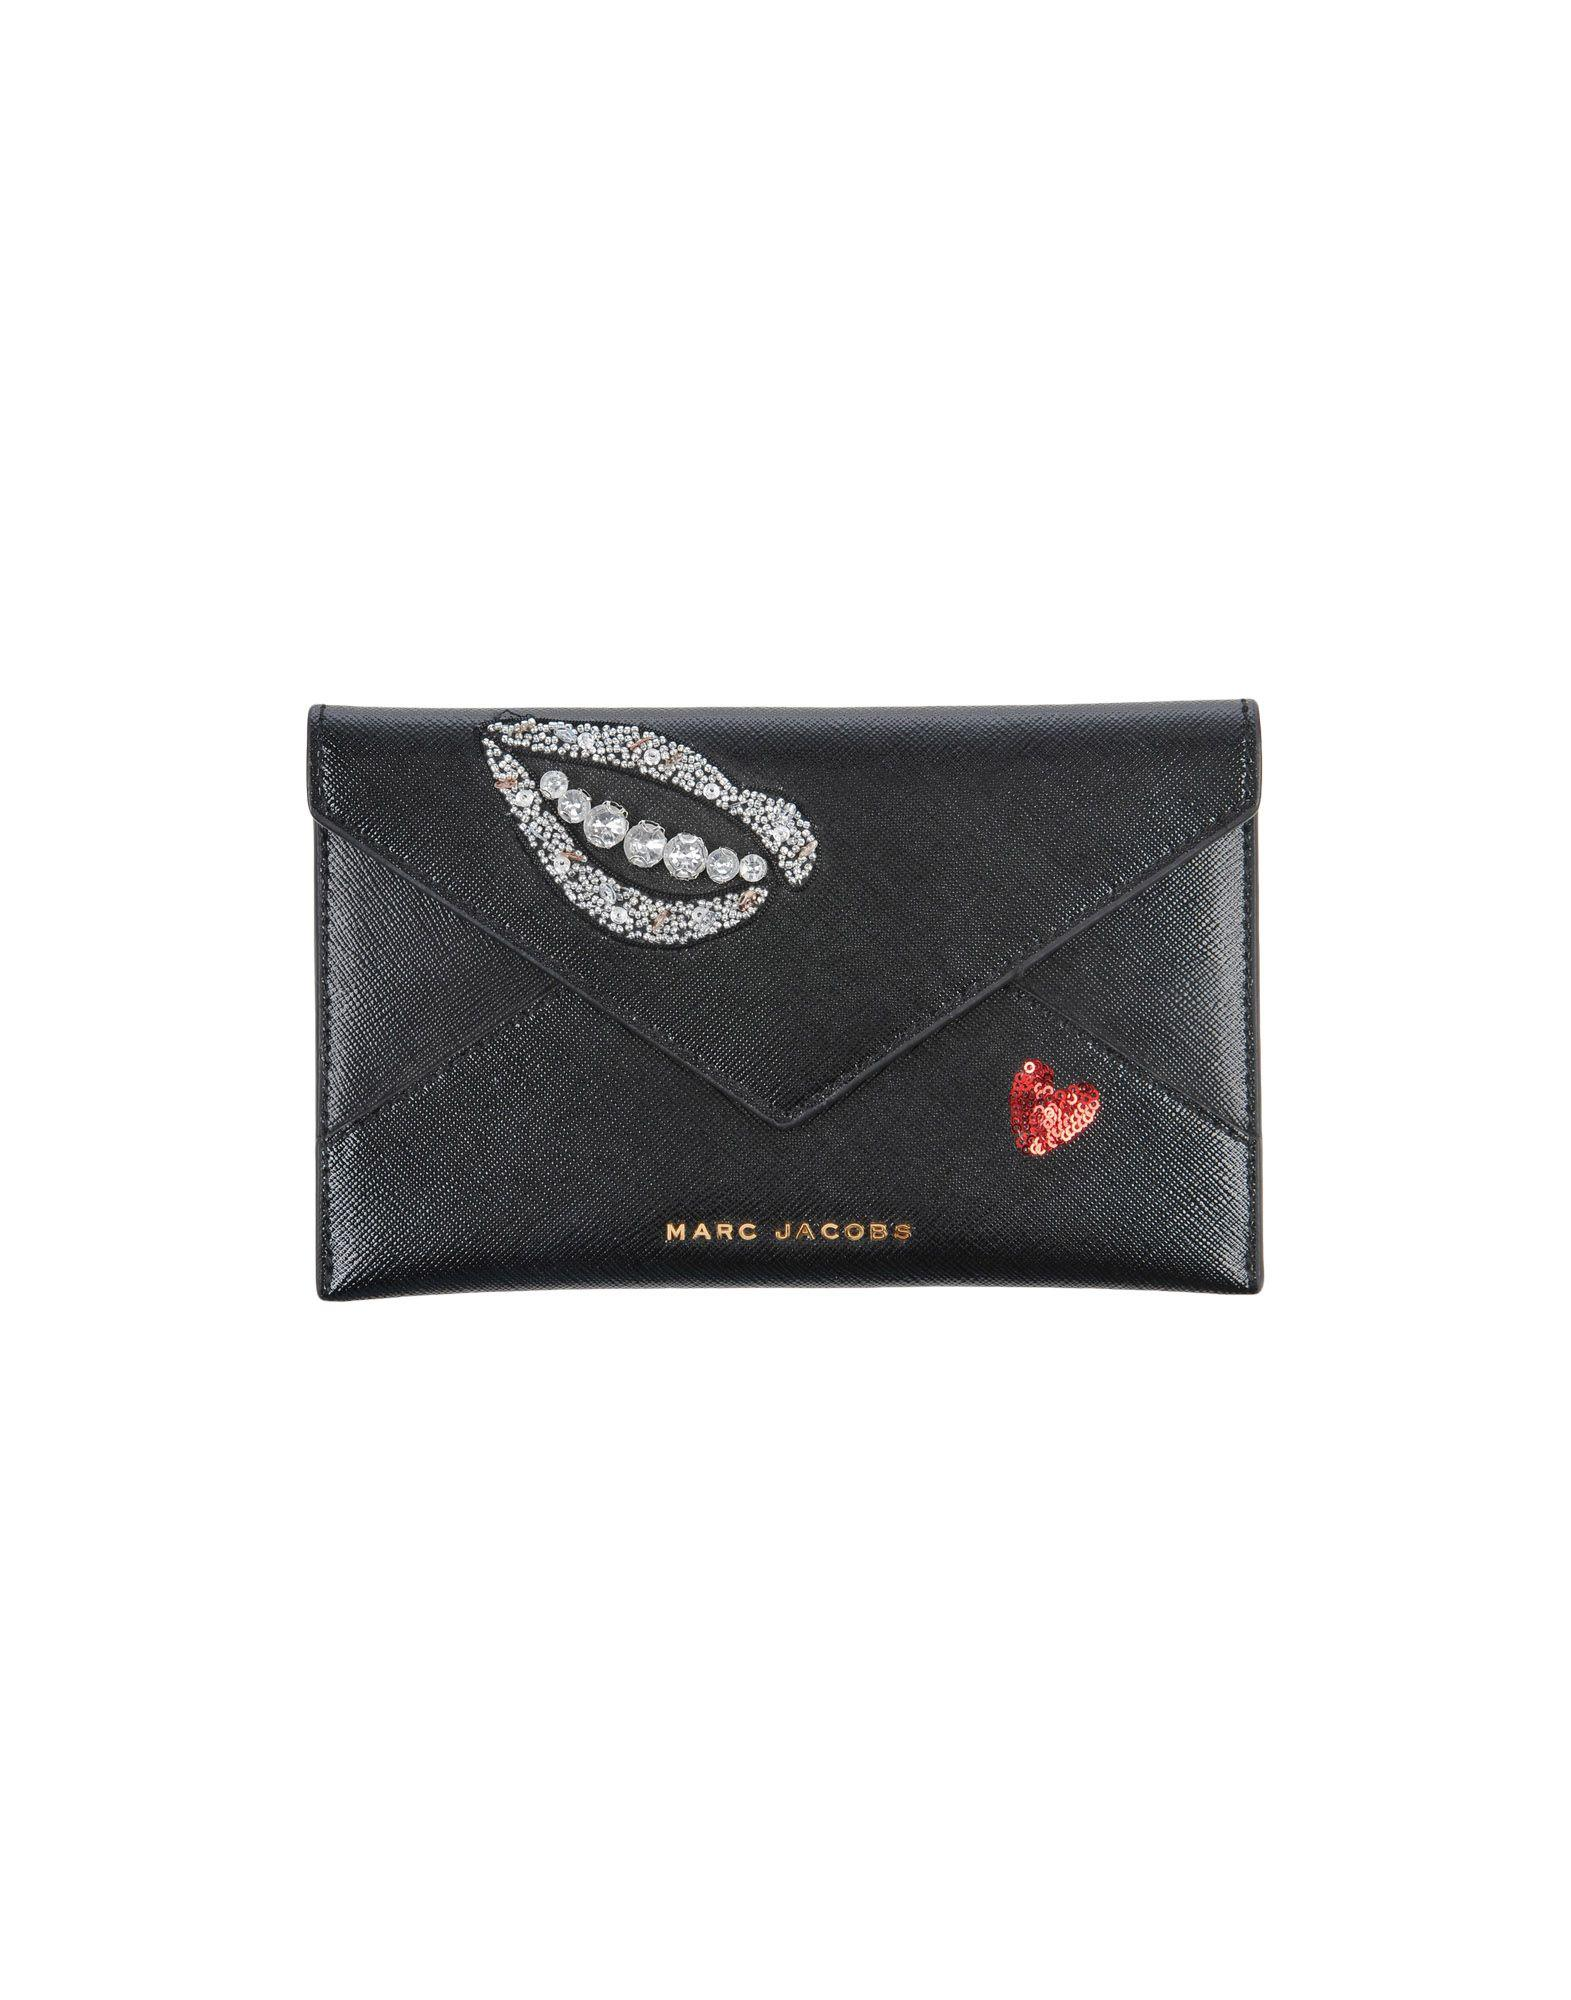 Marc Jacobs Pouches In Black